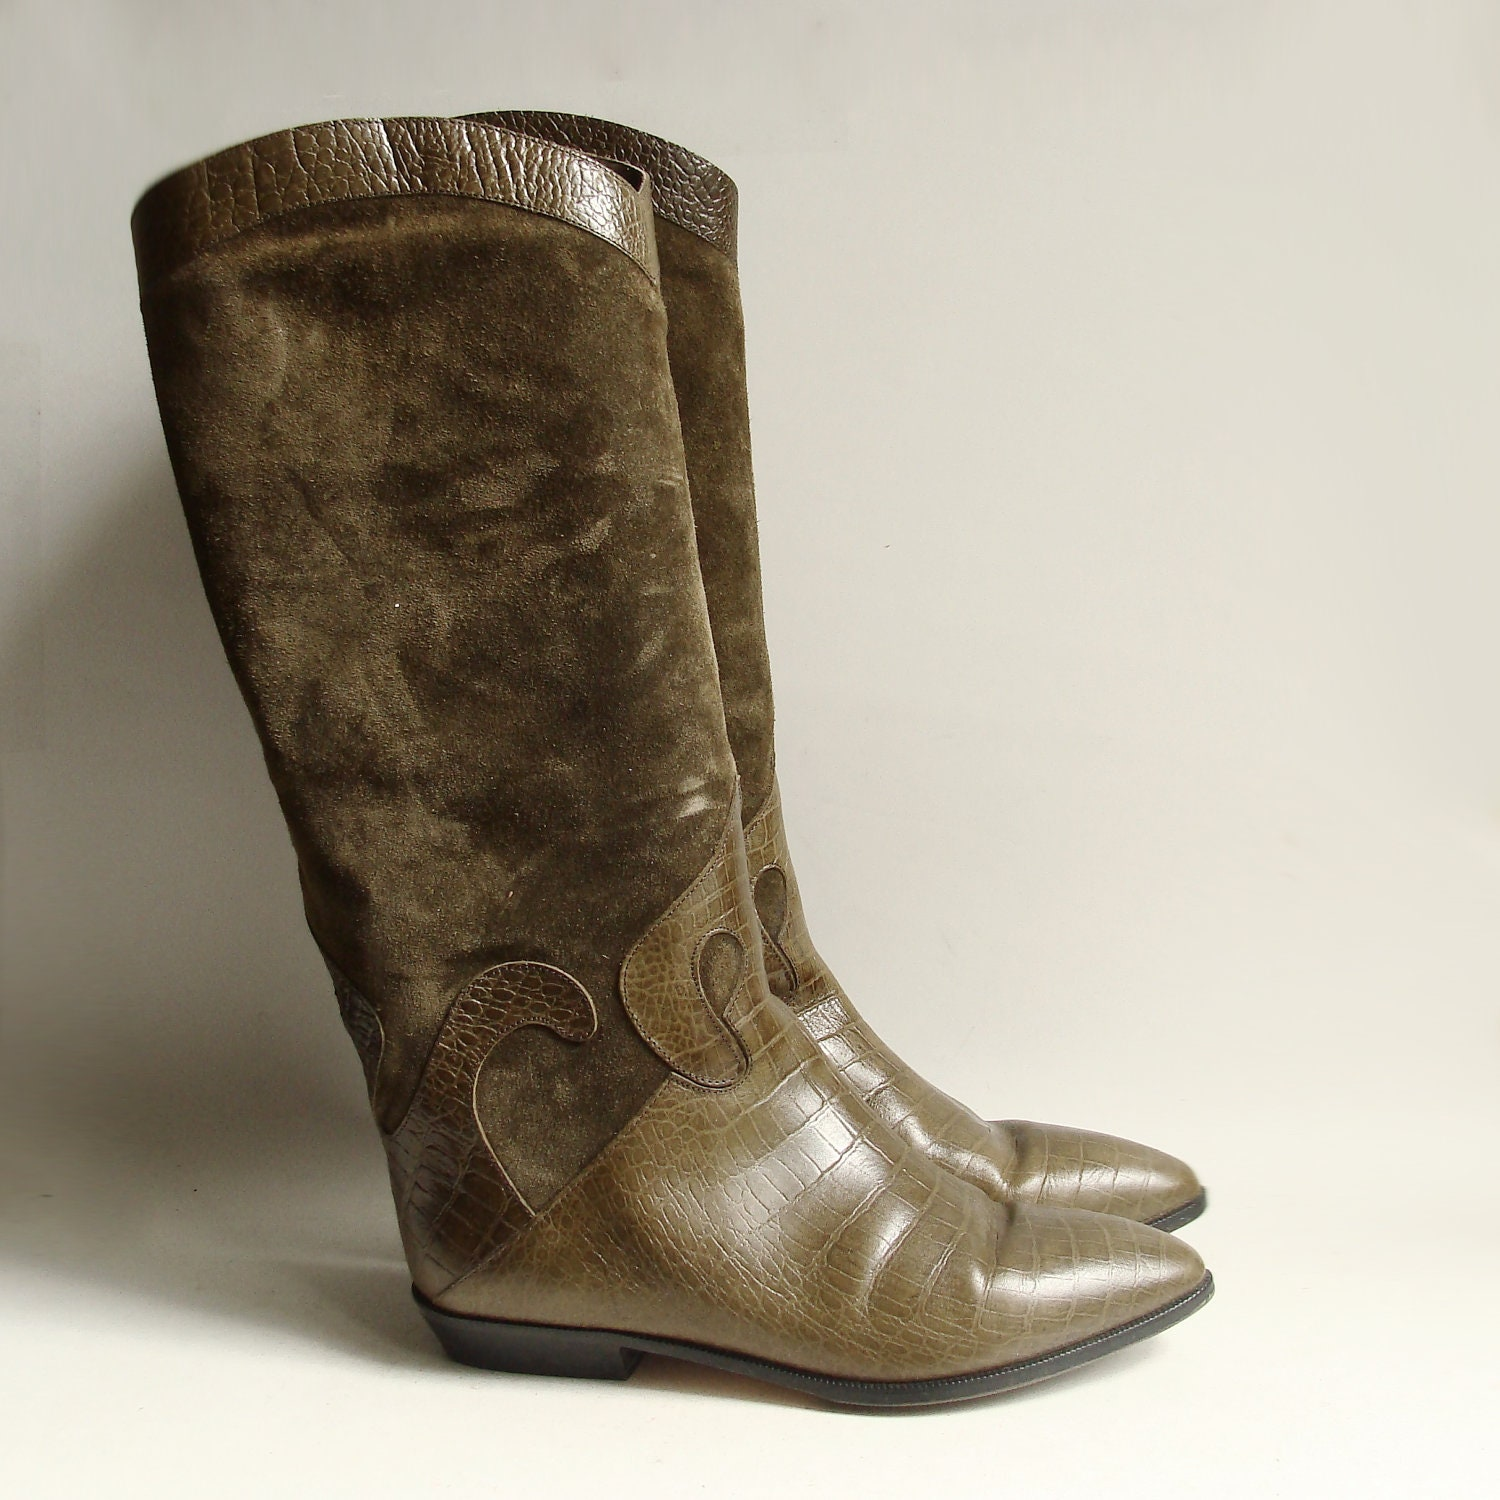 boots 8 olive green boots 80s 1980s boots suede